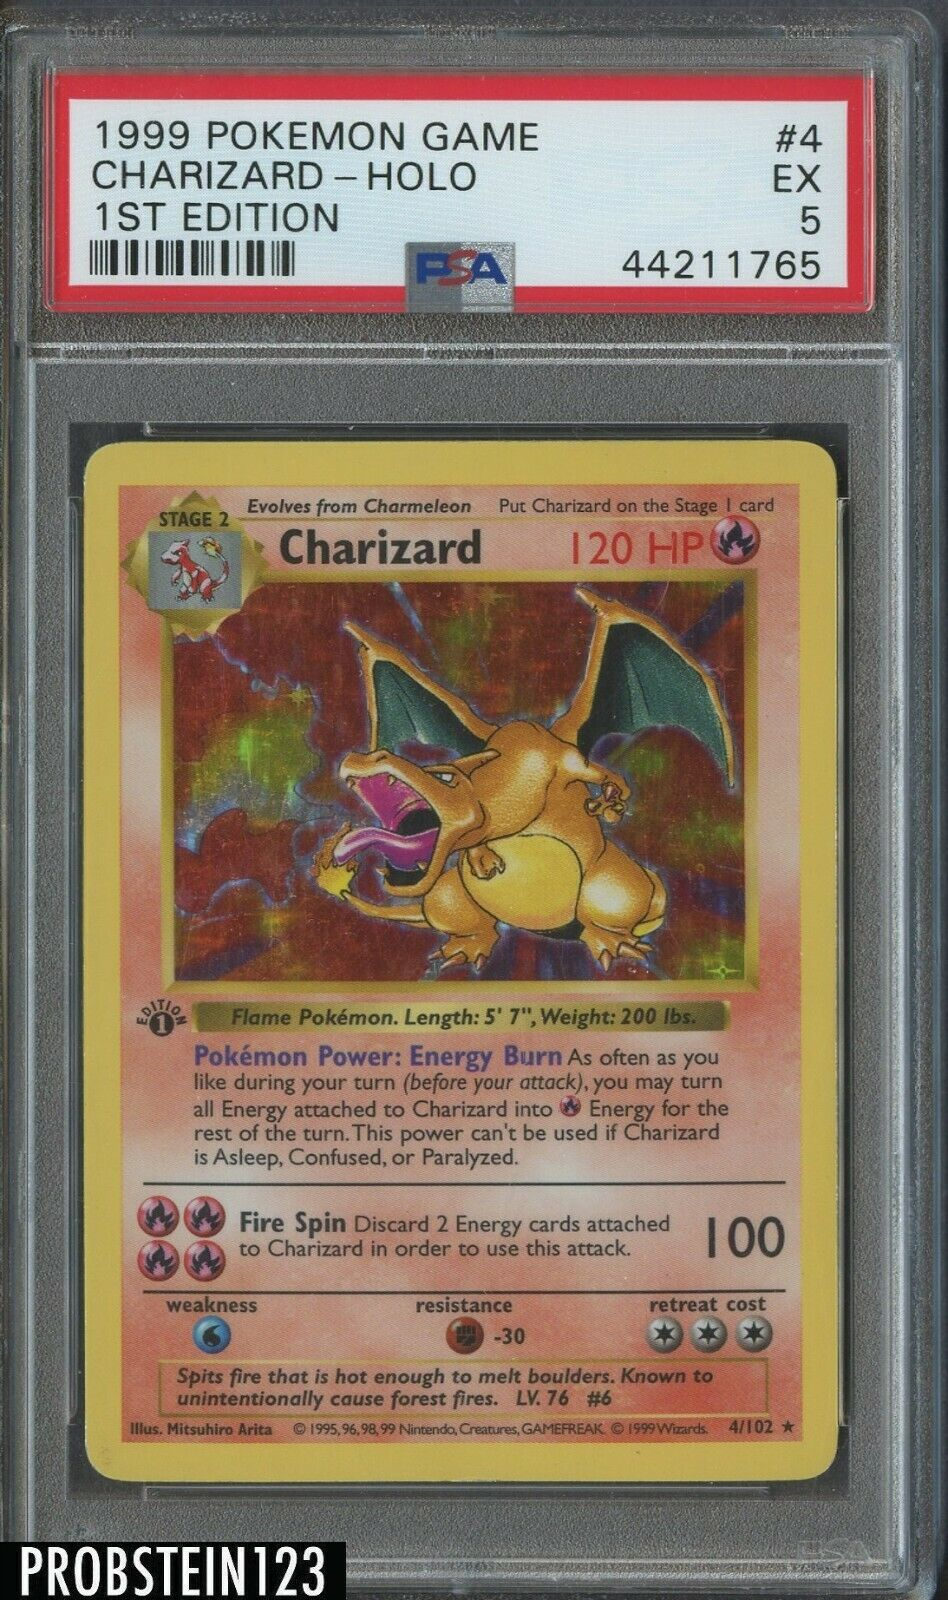 1999 Pokemon Game 1st Edition 4 Holo Charizard PSA 5 EX  HOT CARD